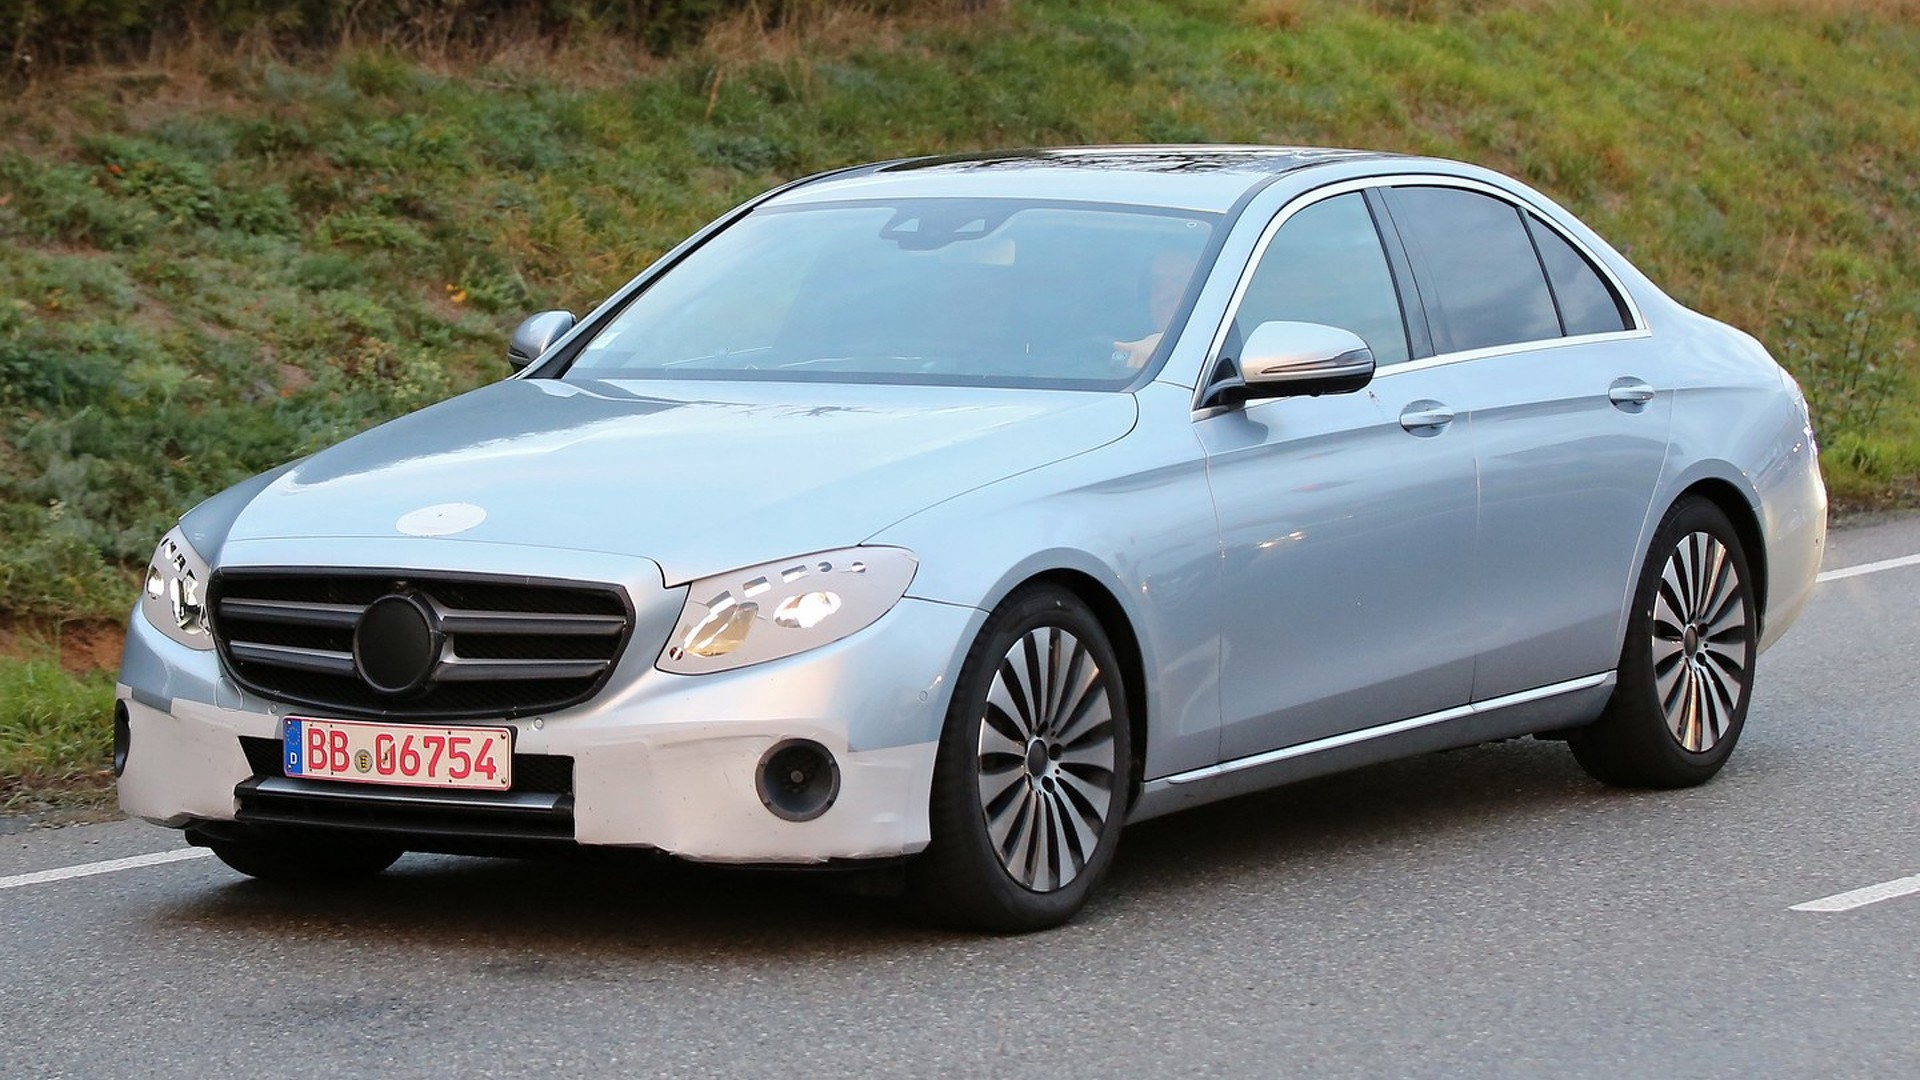 2016 mercedes benz e class sedan spotted in traffic with for 2016 mercedes benz e class sedan